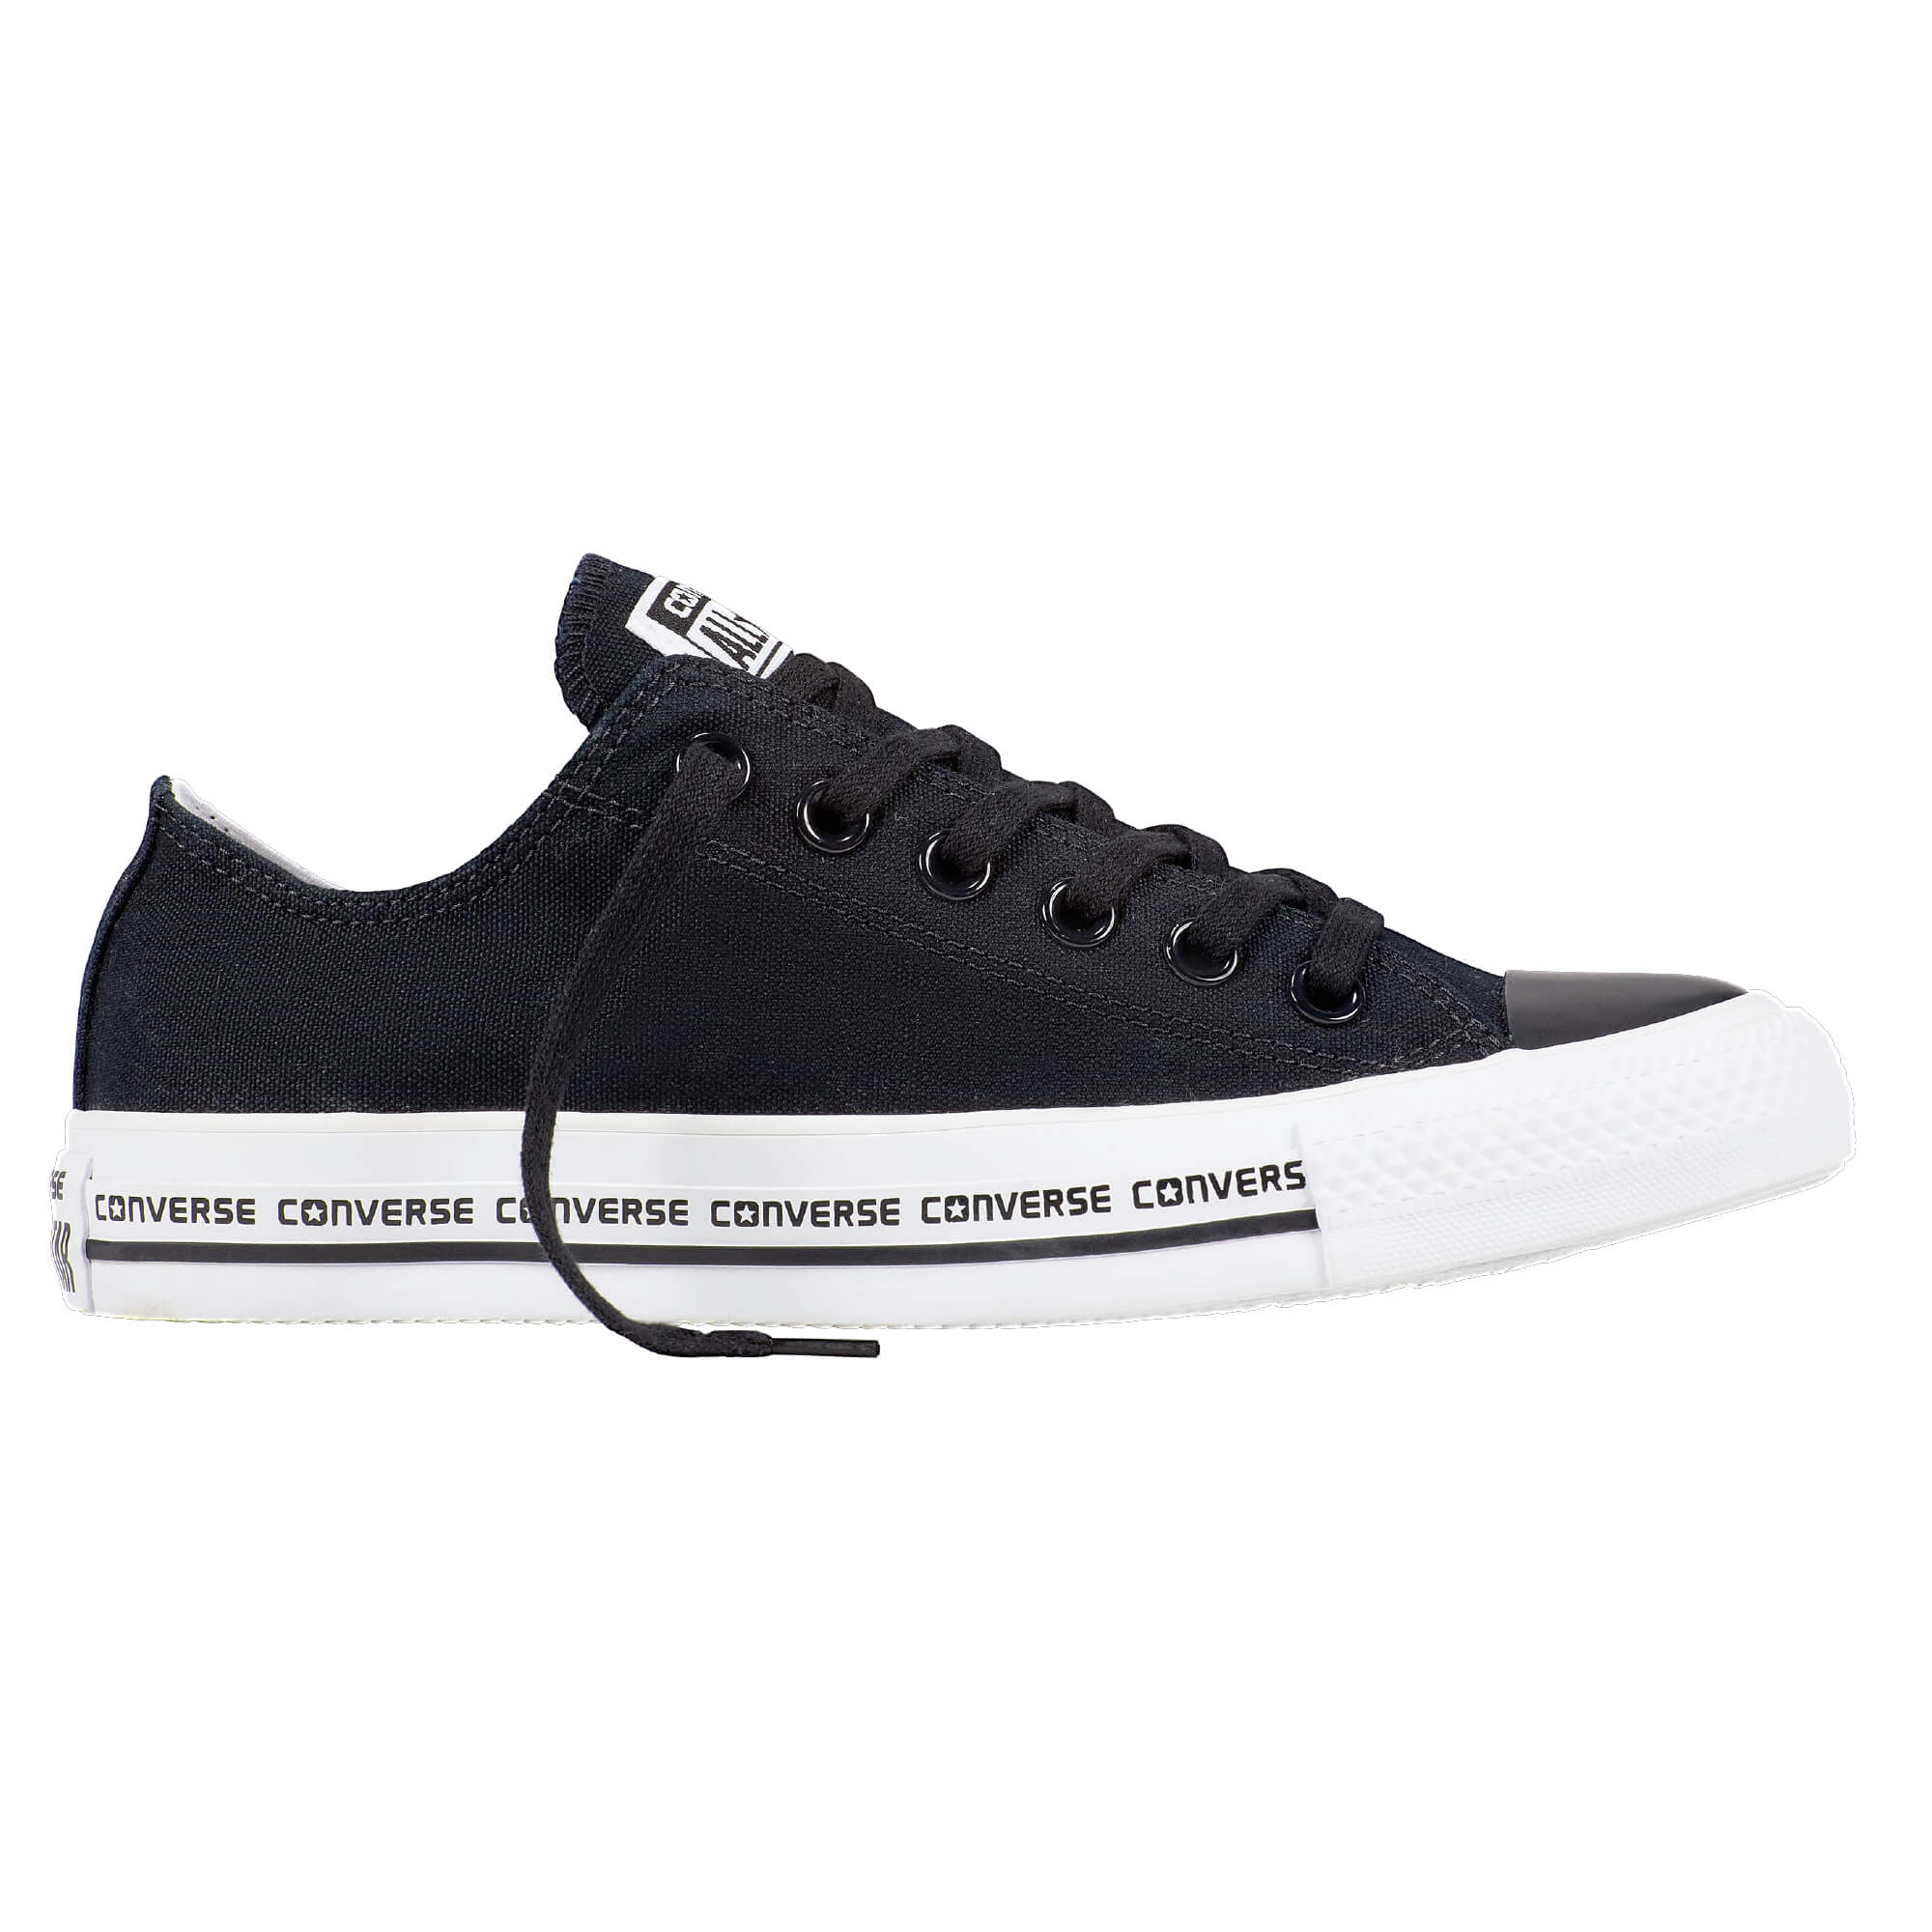 Chuck Taylor All Star imagine produs